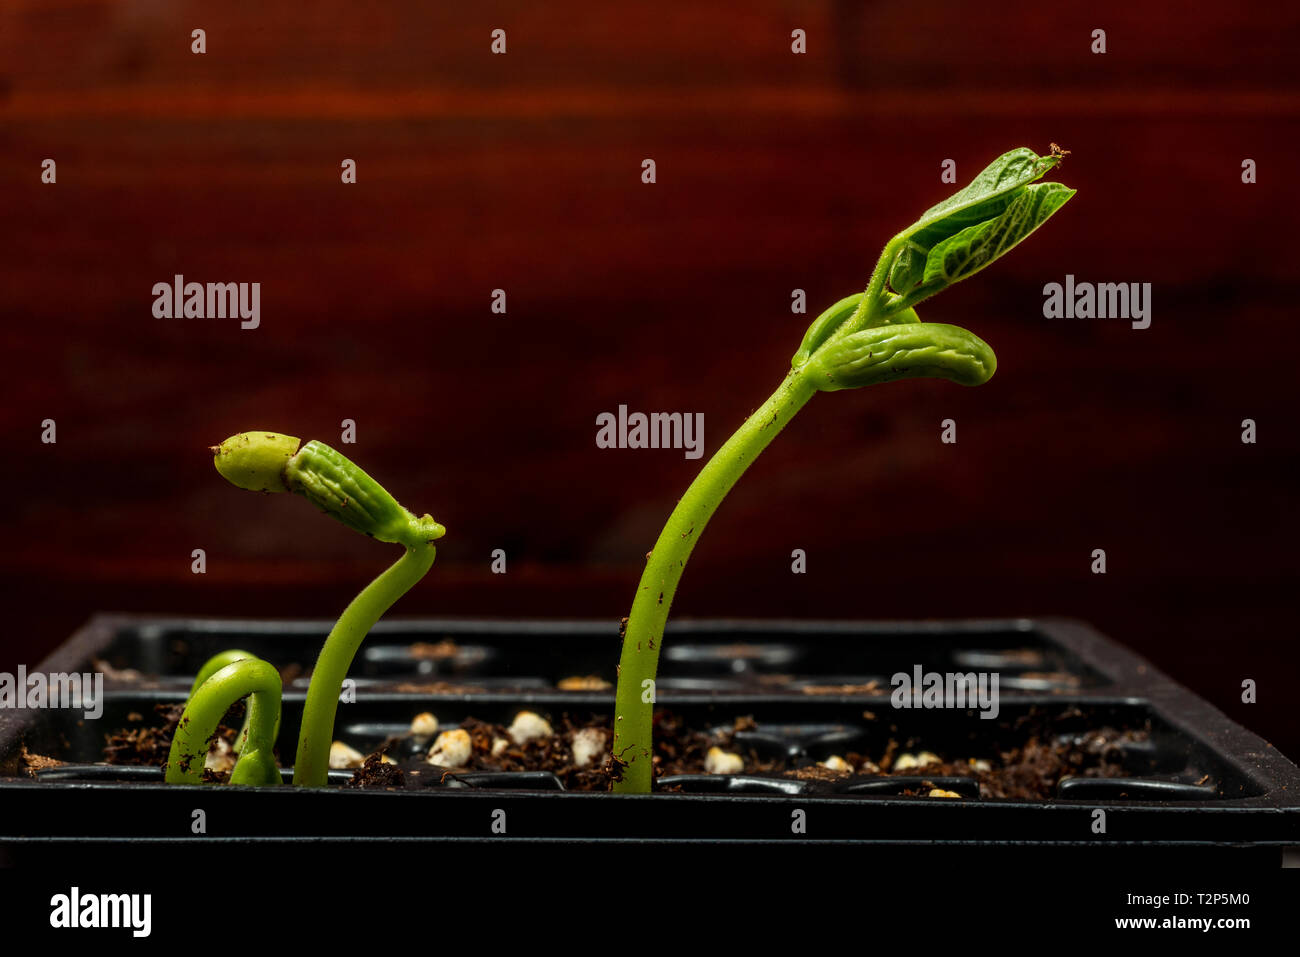 Horizontal shot of bean sprouts in a plastic tray getting ready for planting. - Stock Image